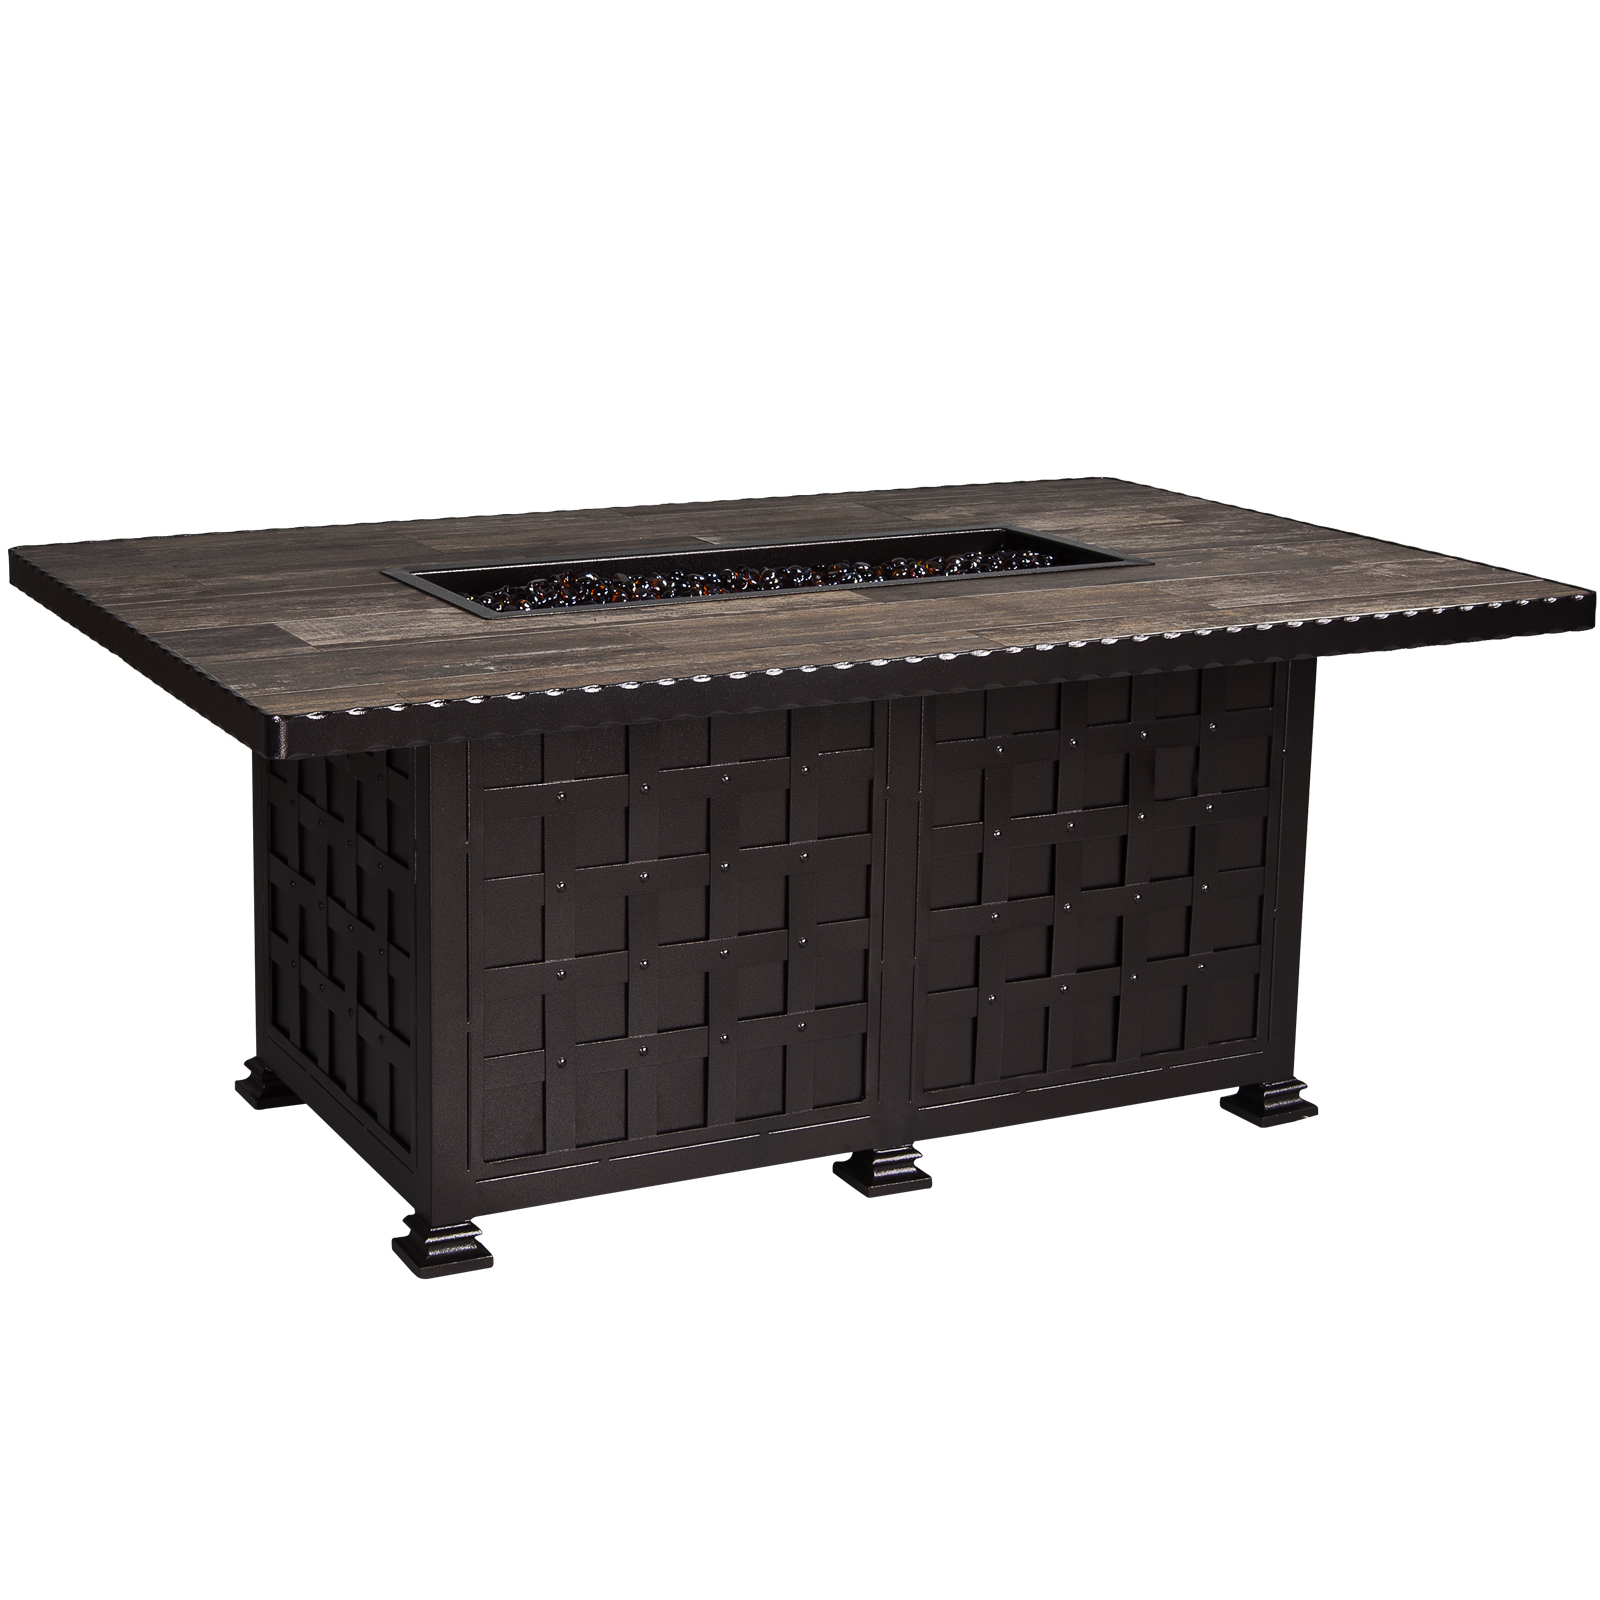 36-in-x58-in-Chat-Height-Classico-Fire-Pit-51-36C-Classico-W-OW-Lee